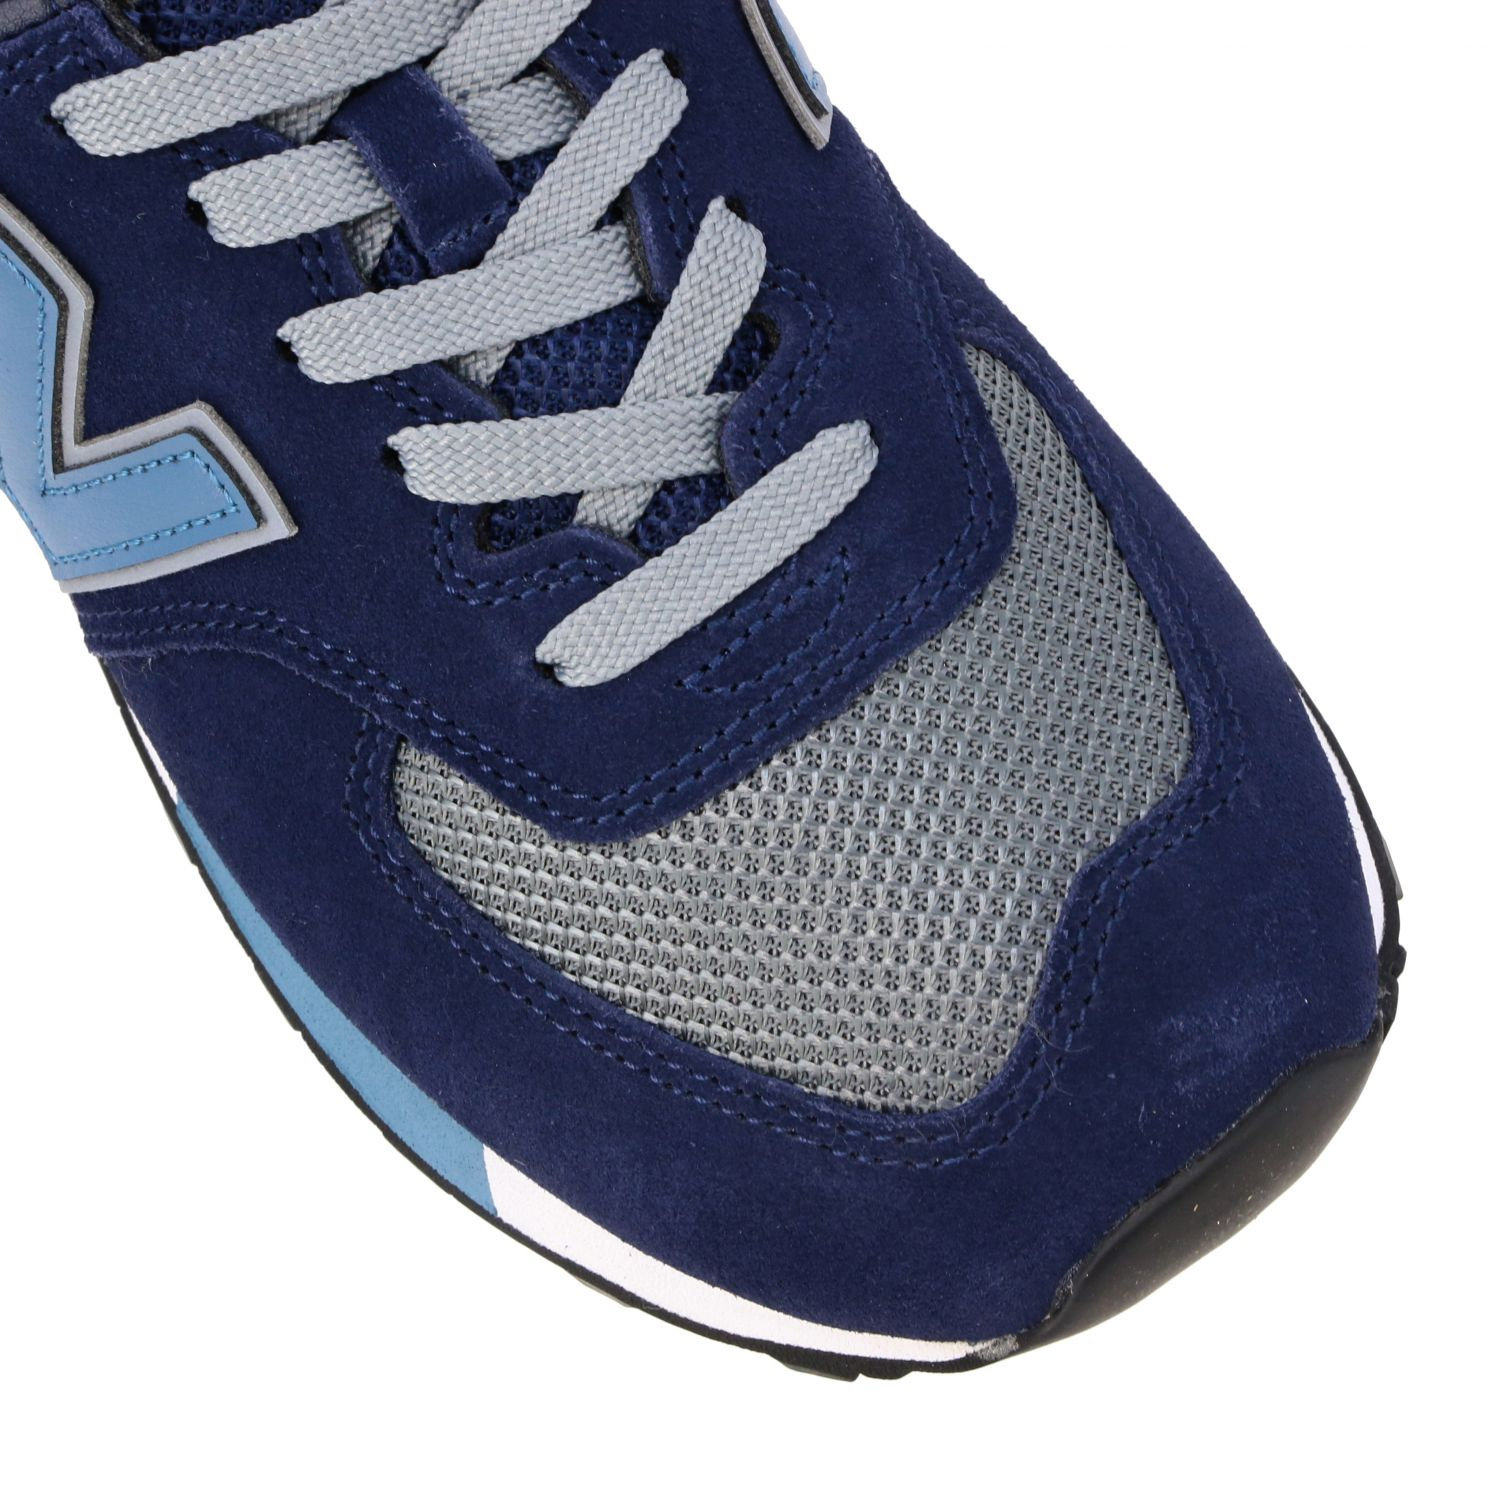 Baskets 574 New Balance en daim et filet contrastés bleu 4